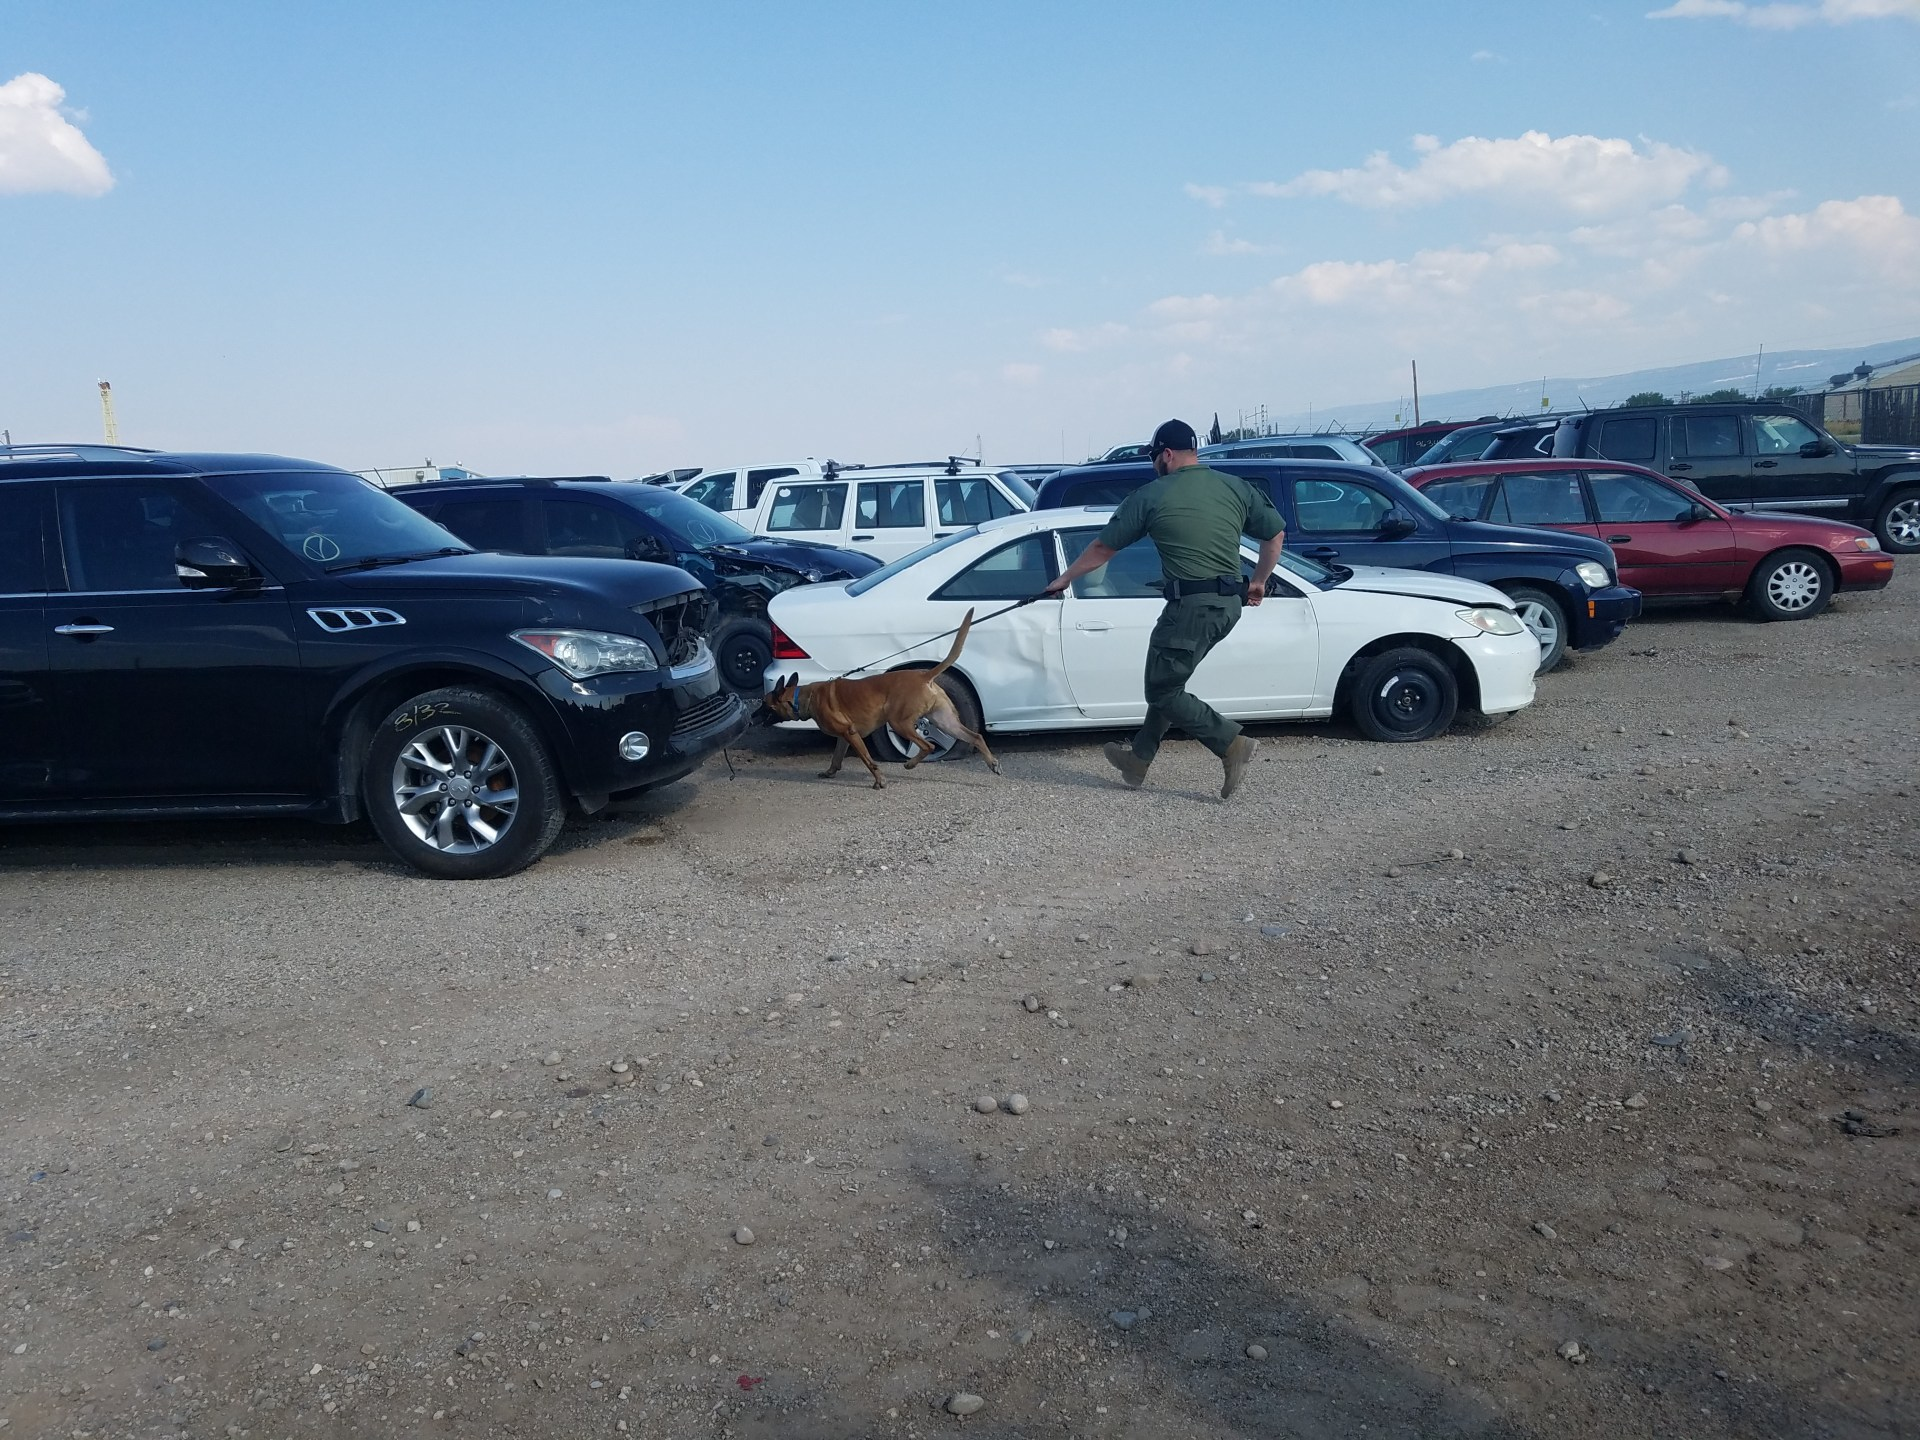 Copart car lots are an ideal location for k-9 officer training